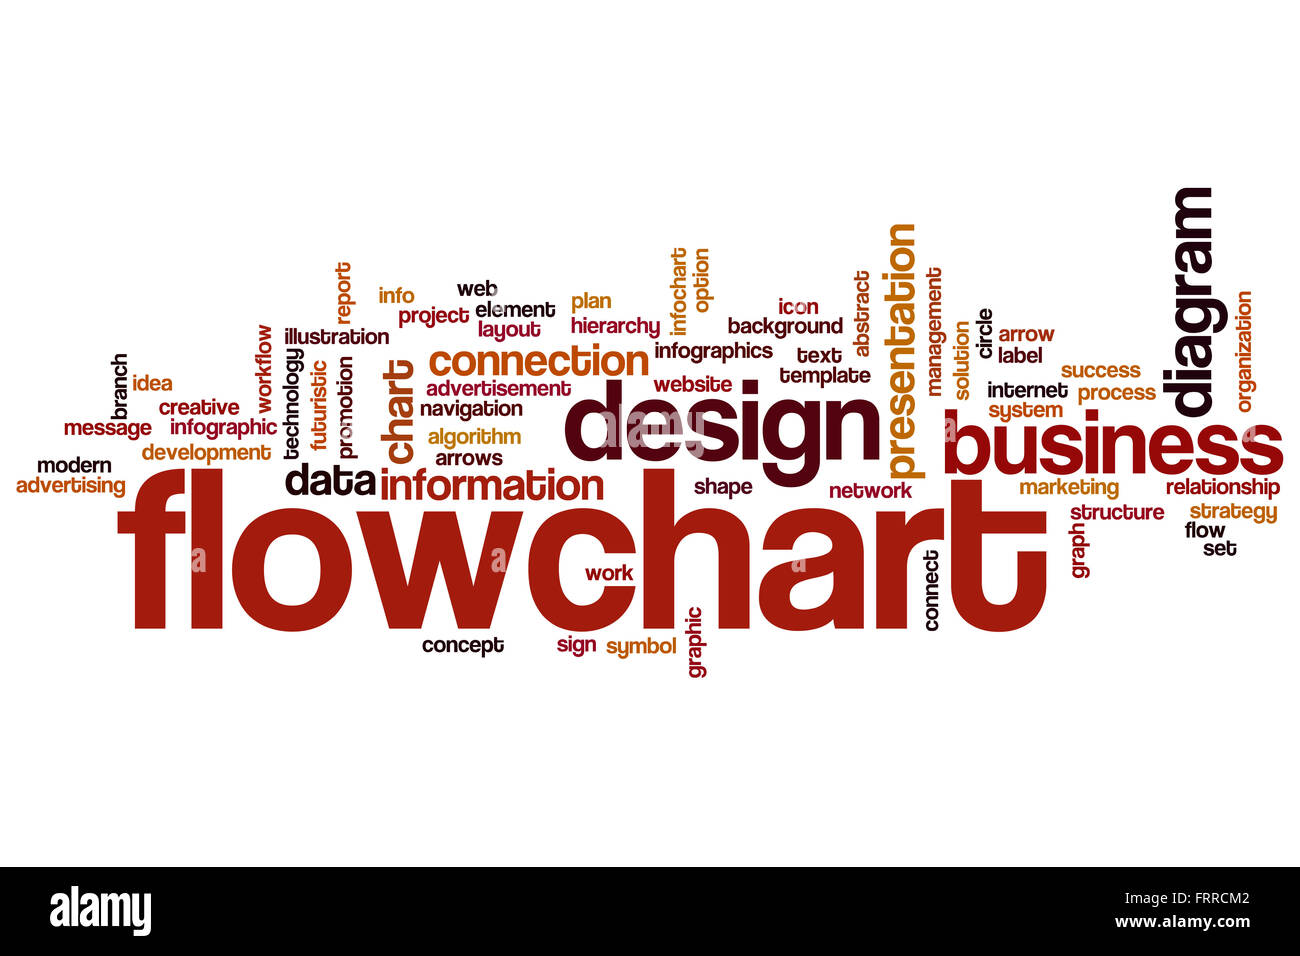 Flowchart word cloud concept with diagram information related tags flowchart word cloud concept with diagram information related tags ccuart Choice Image